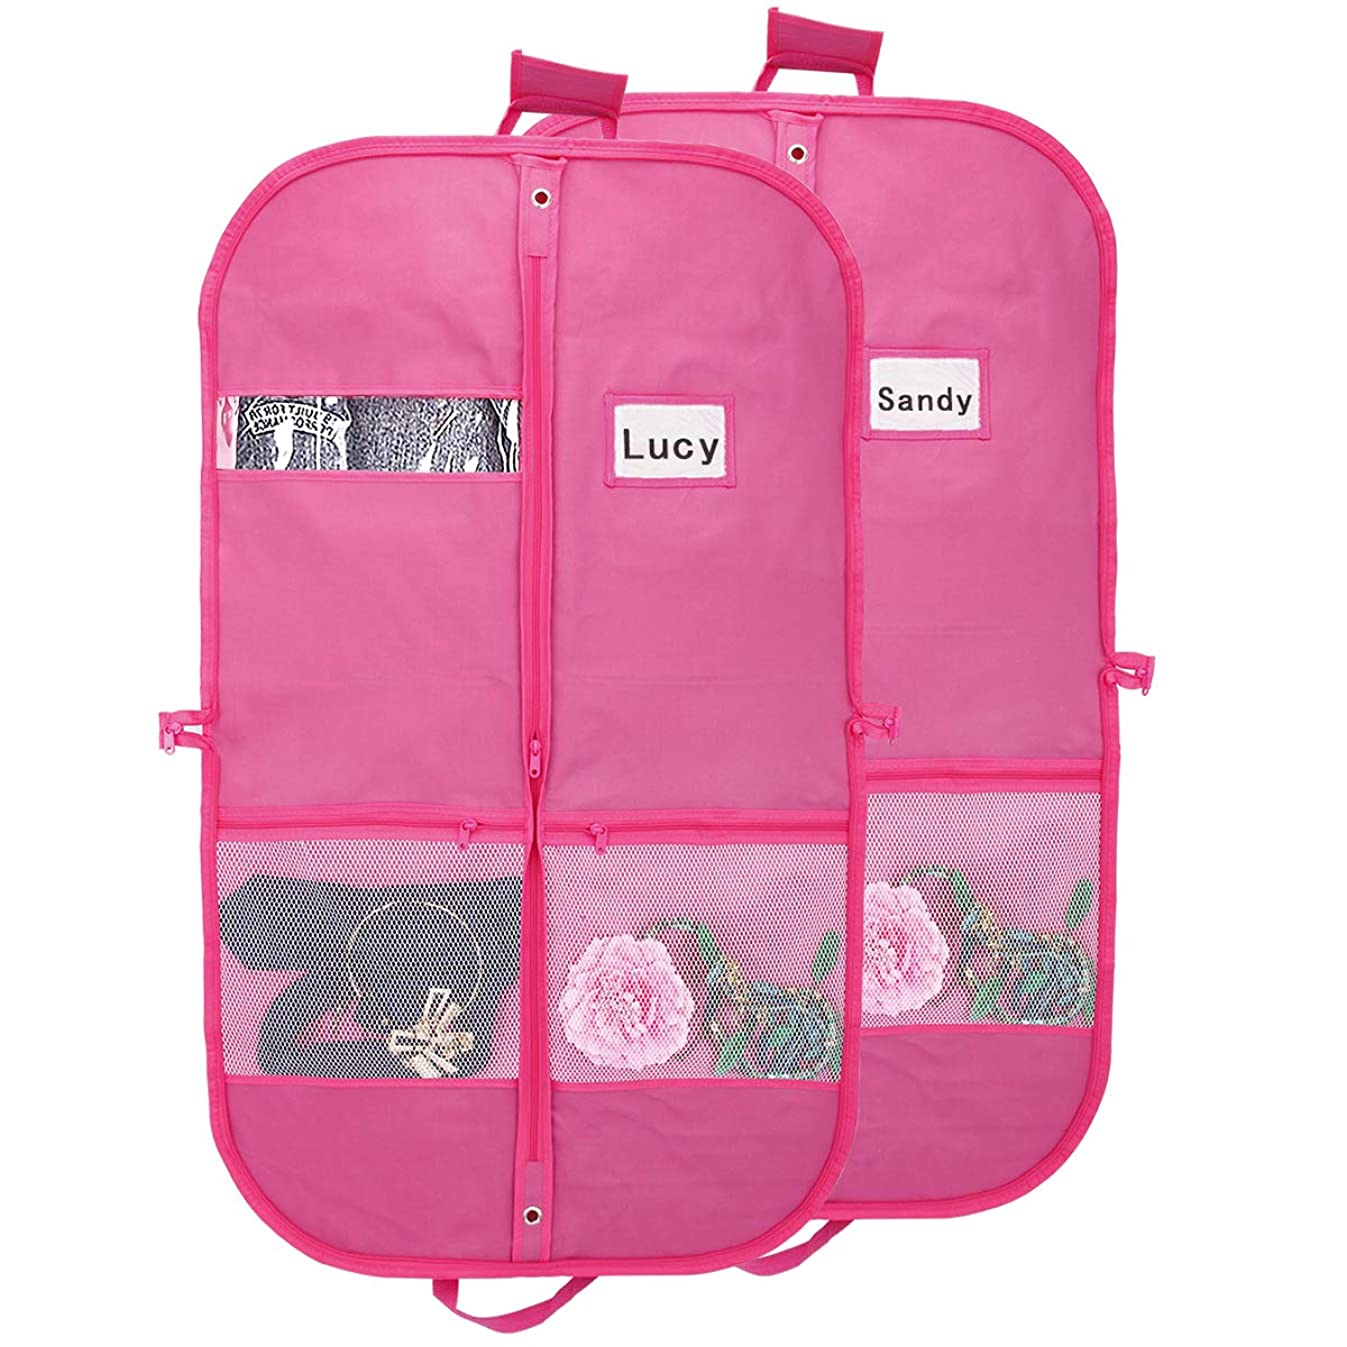 Kernorv Pink Garment Bags for Dance Costumes Waterproof and Breathble 40